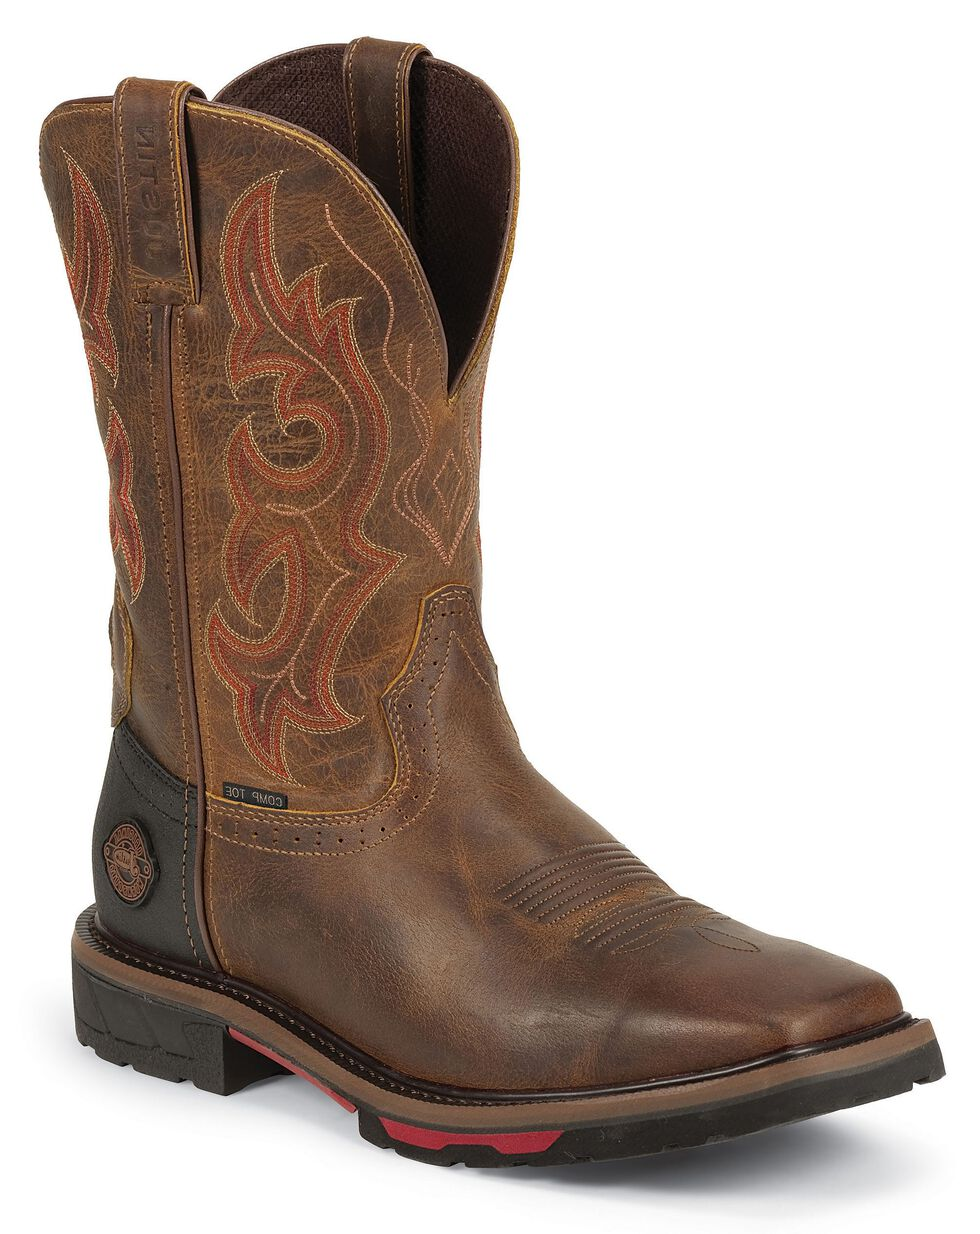 Justin Men's Hybred Rugged Tan EH Western Work Boots - Composite Toe, Tan, hi-res